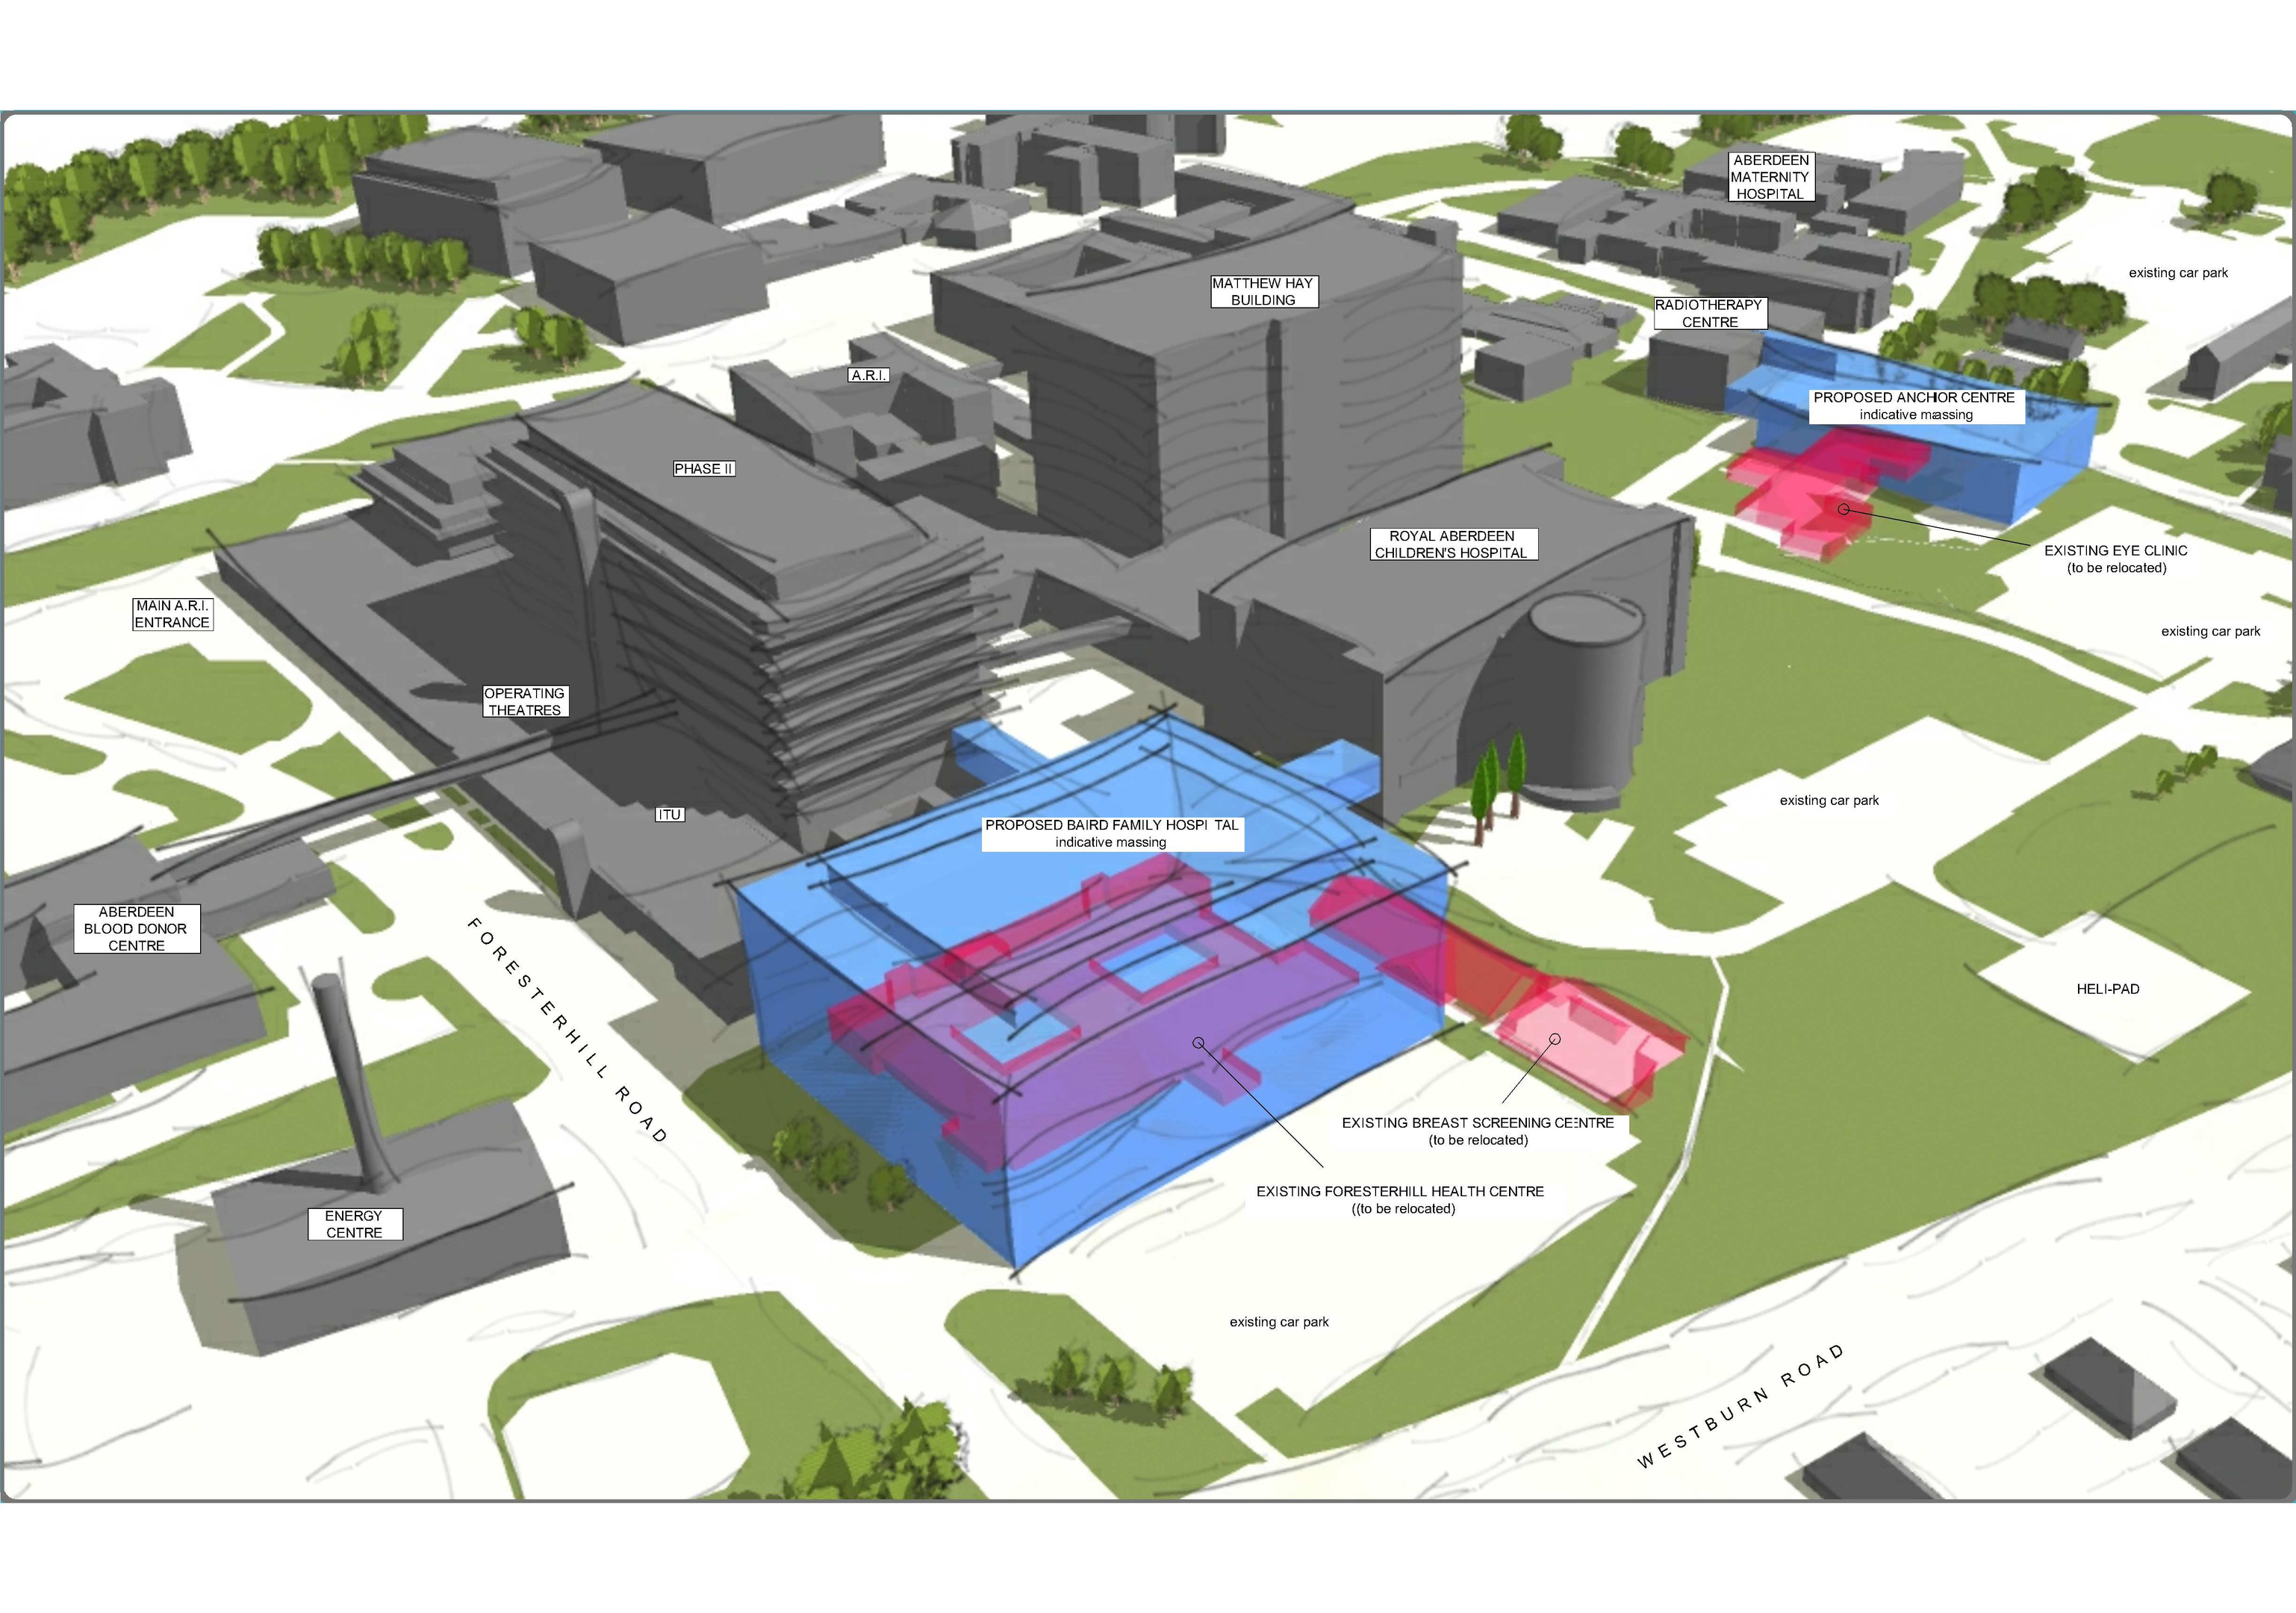 An artist's impression of how the completed complex could look.